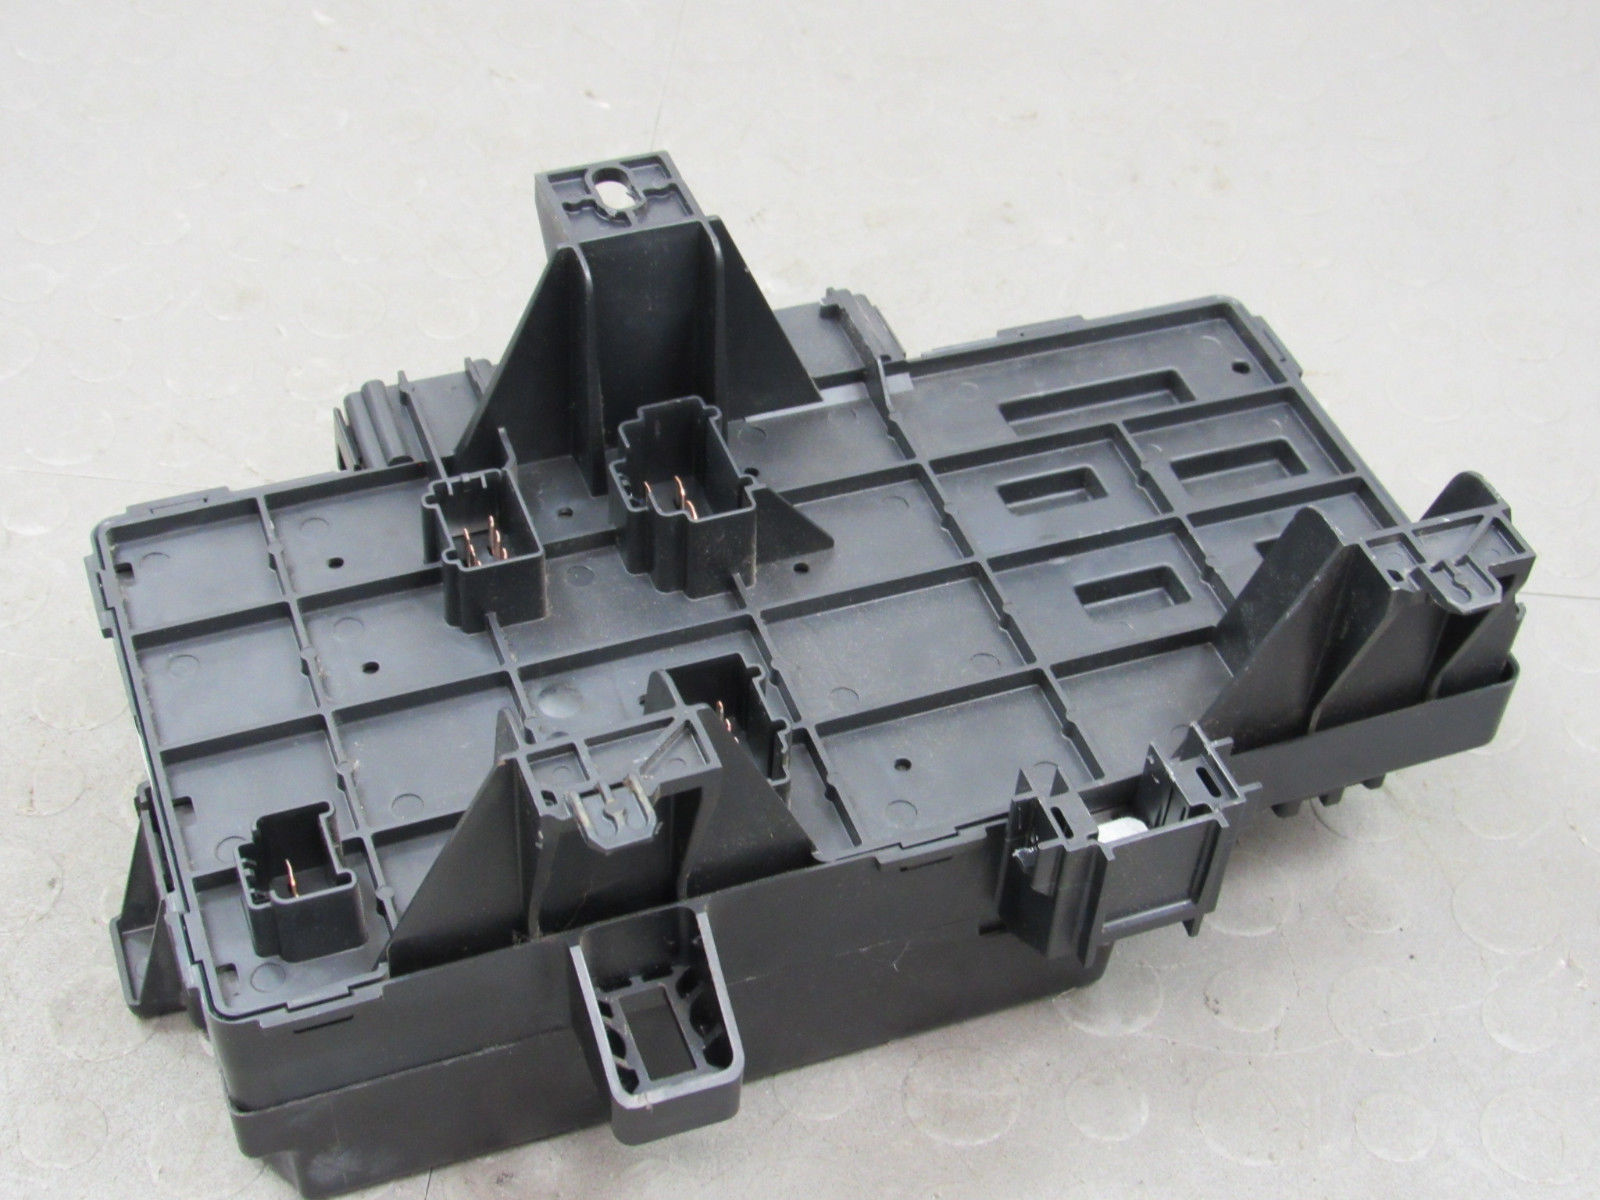 05 Expedition Navigator Interior Fuse Relay Box Block Center 5l1t Carrier Ac 14a067 S